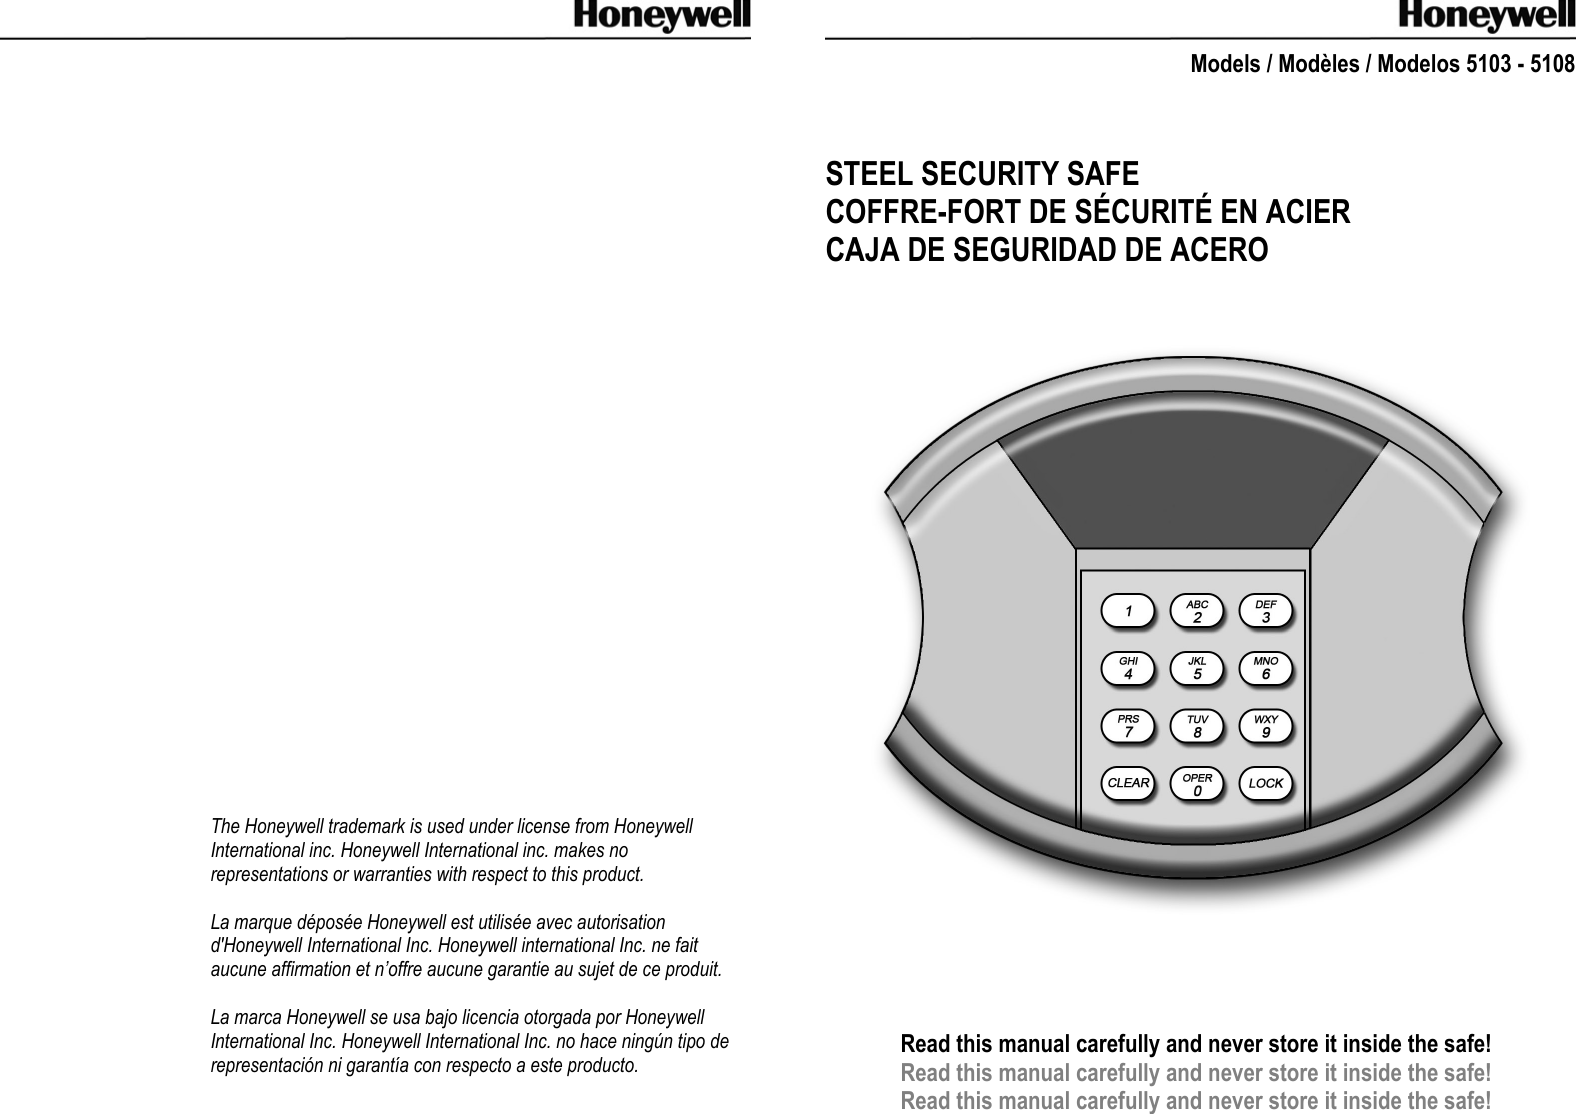 Honeywell Home Security System 5103 Users Manual 5108 Safe Owners